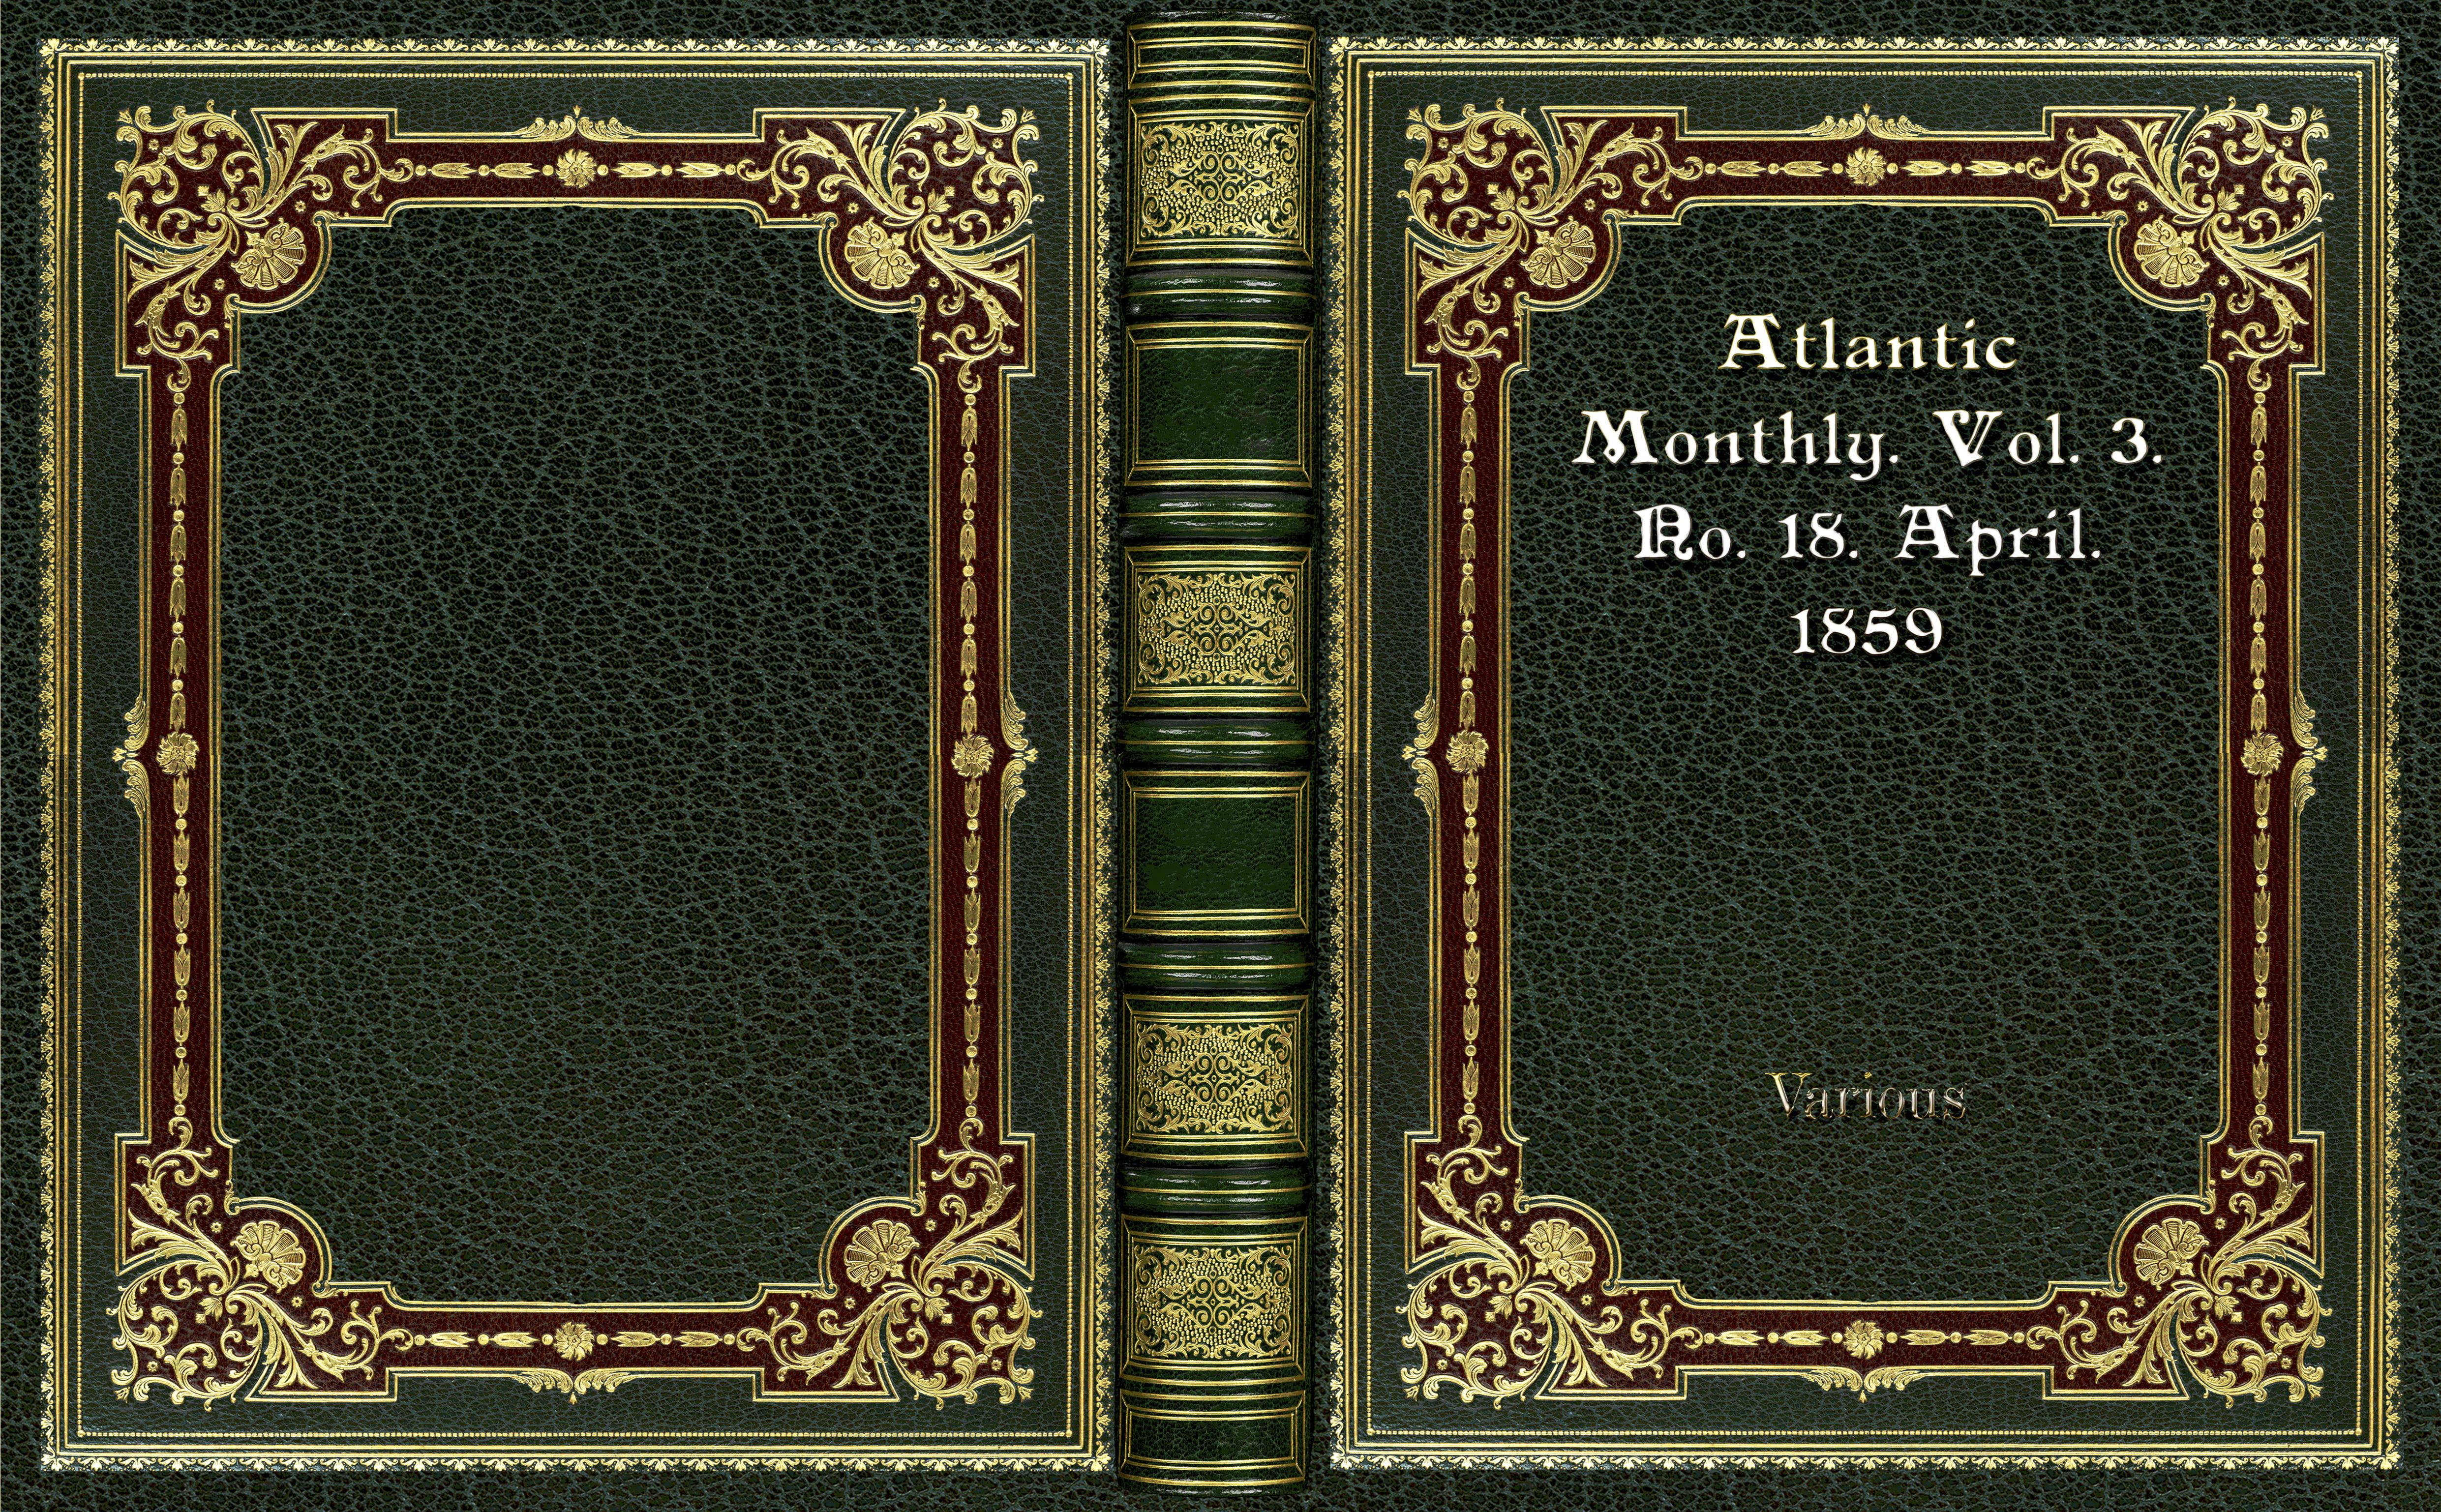 Atlantic Monthly. Vol. 3. No. 18. April. 1859 cover image